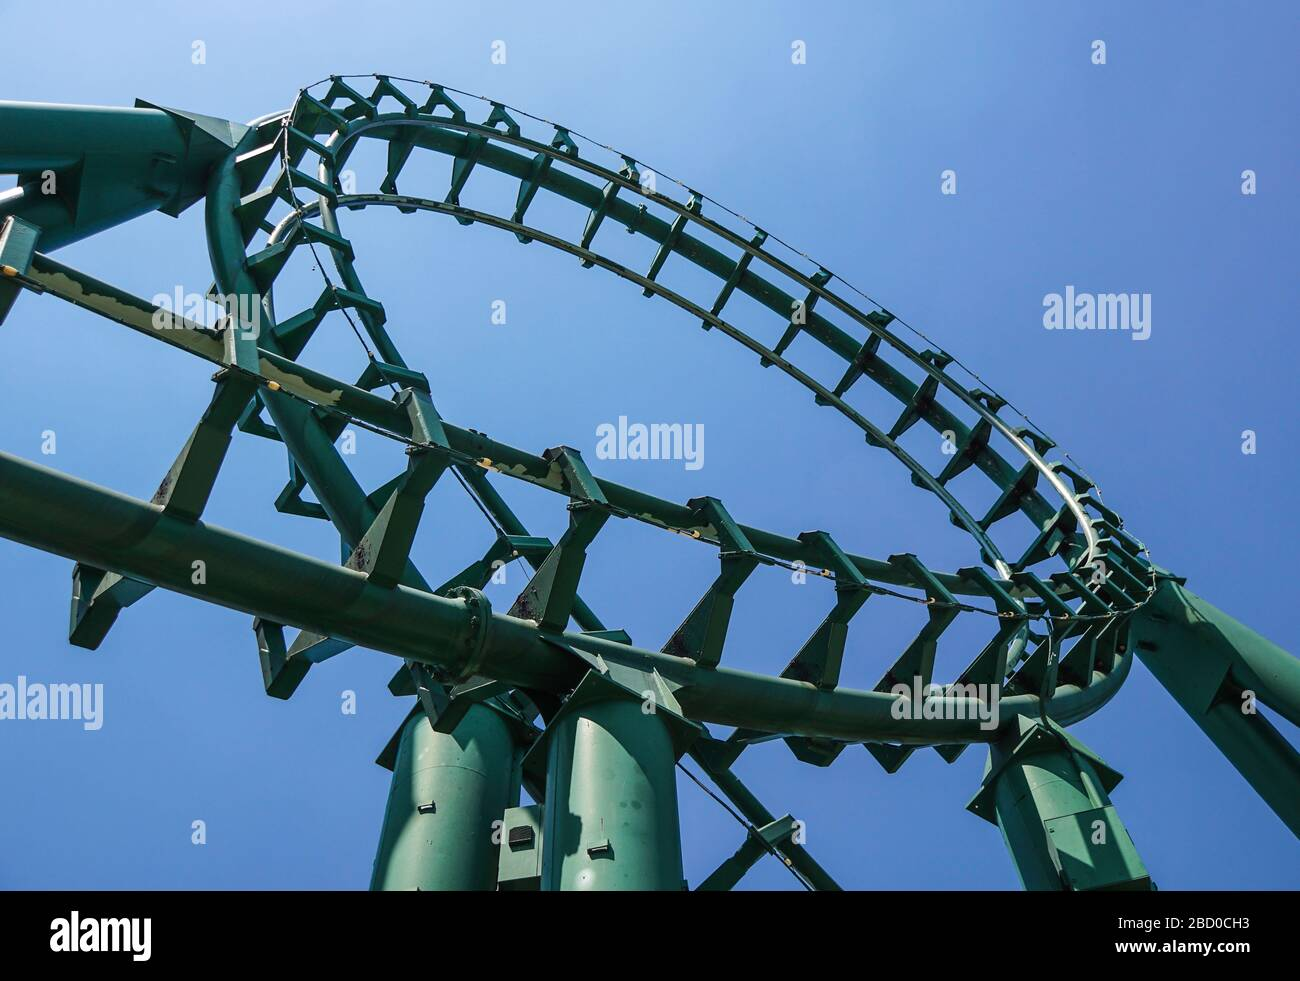 Curved Rollercoaster at a theme or amusement park empty green metal tracks and on blue sky background Stock Photo